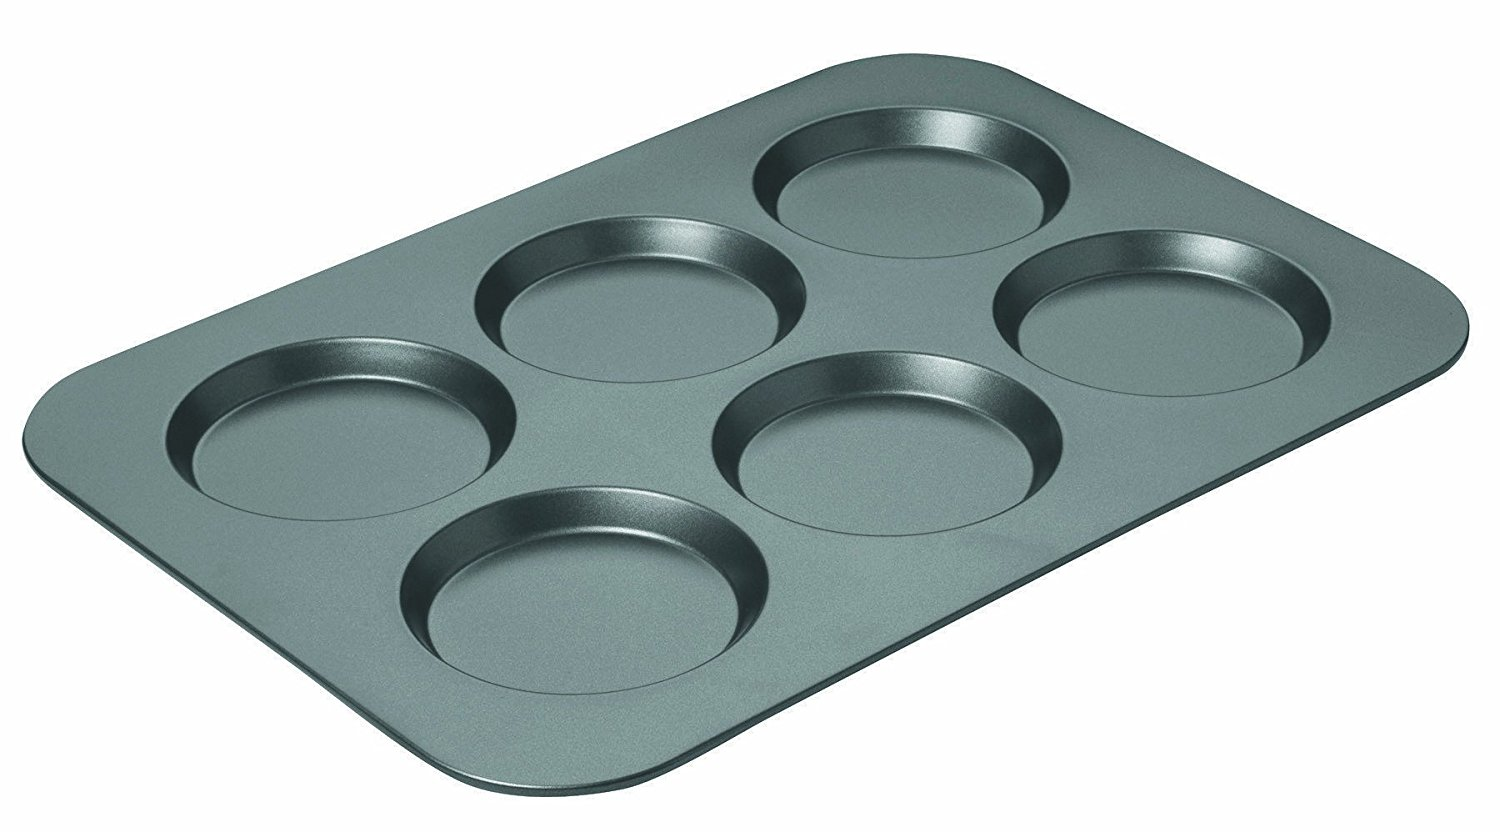 The Muffin Top Pan from Walmart makes baking perfect unison muffin tops easy every time!